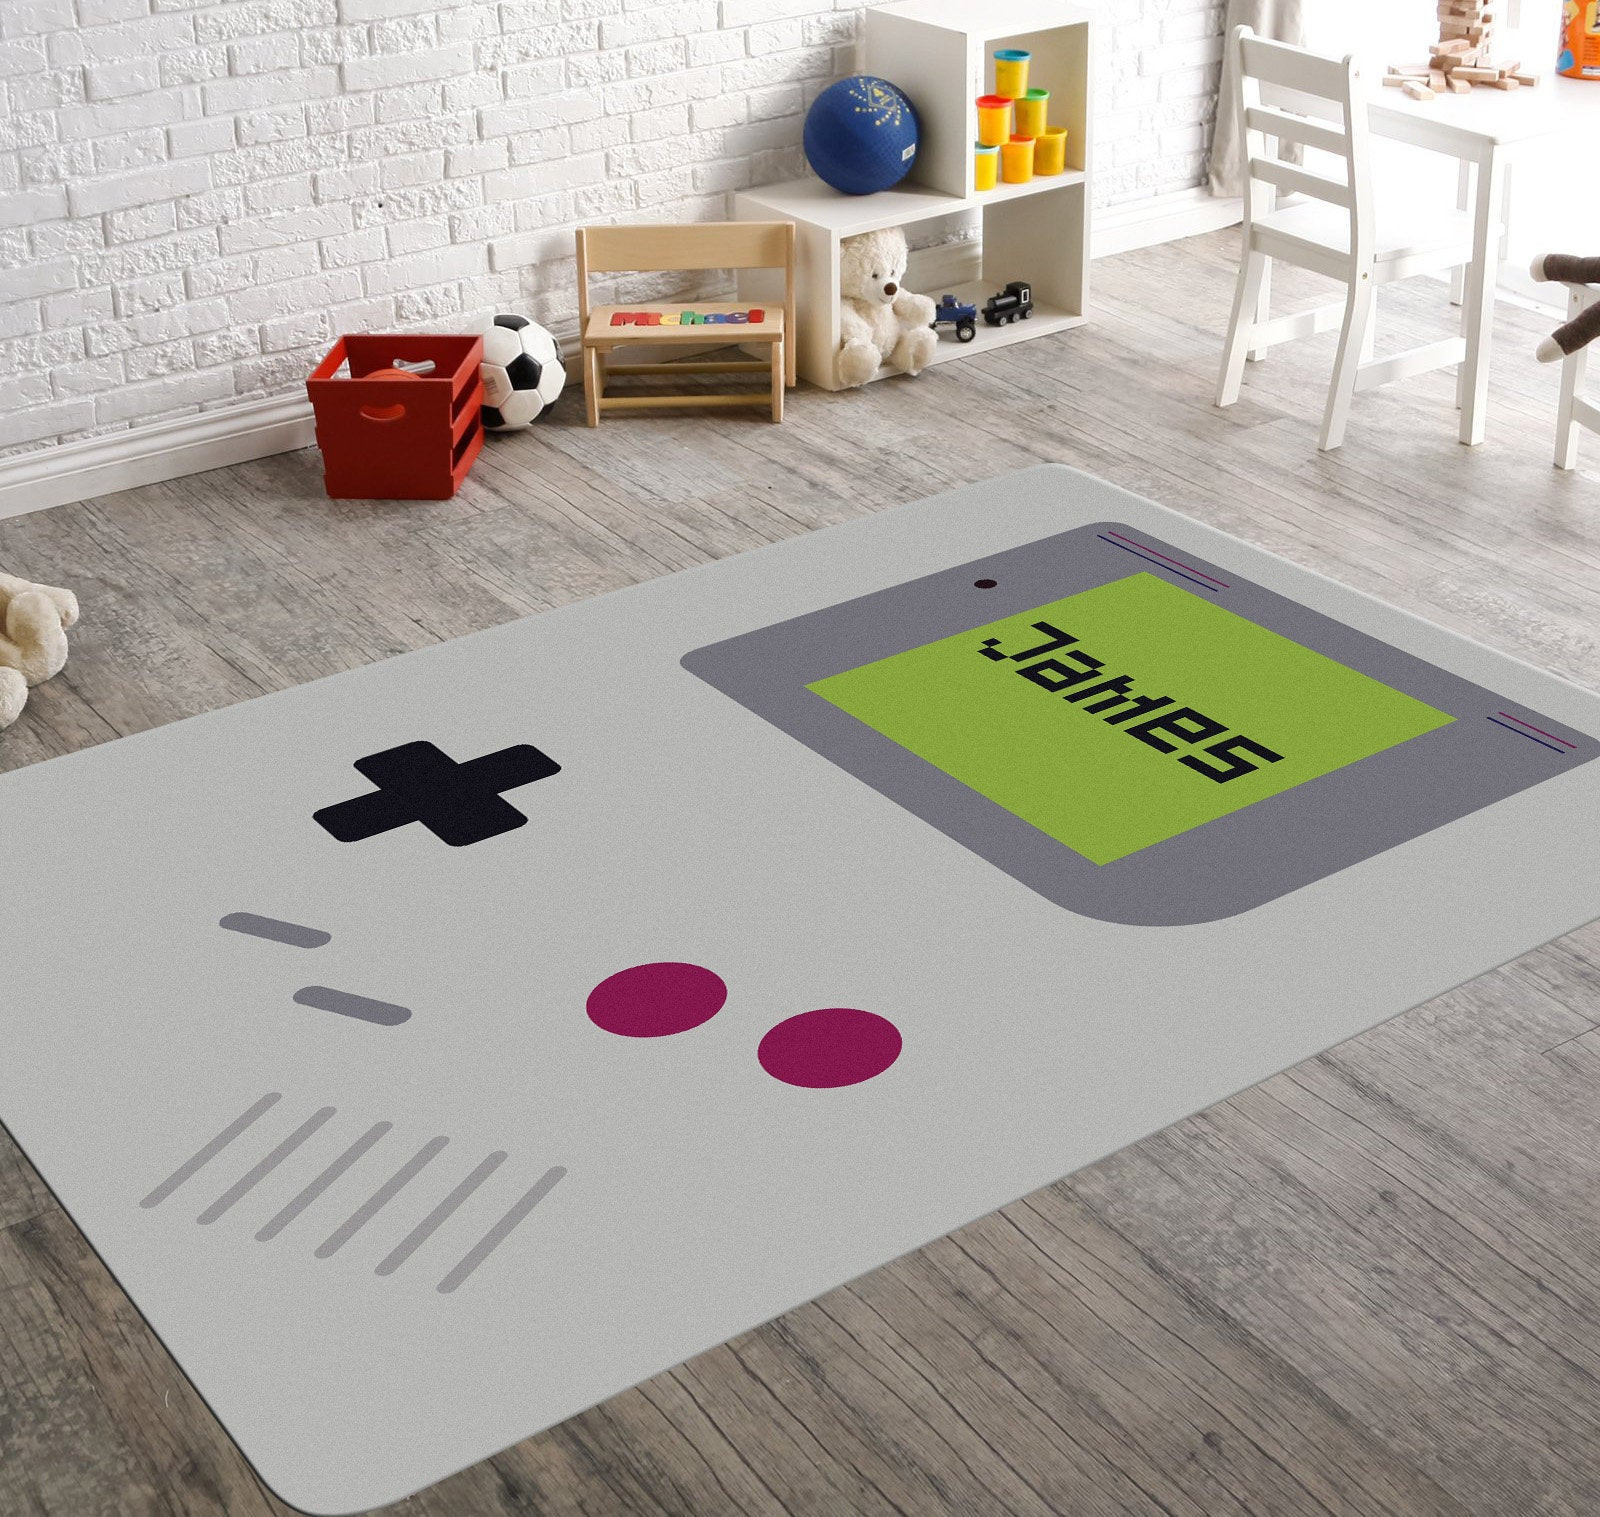 Best ideas about Game Room Rugs . Save or Pin Video Game Rug Gameboy Game Room Rug Name Rugs Playroom Now.